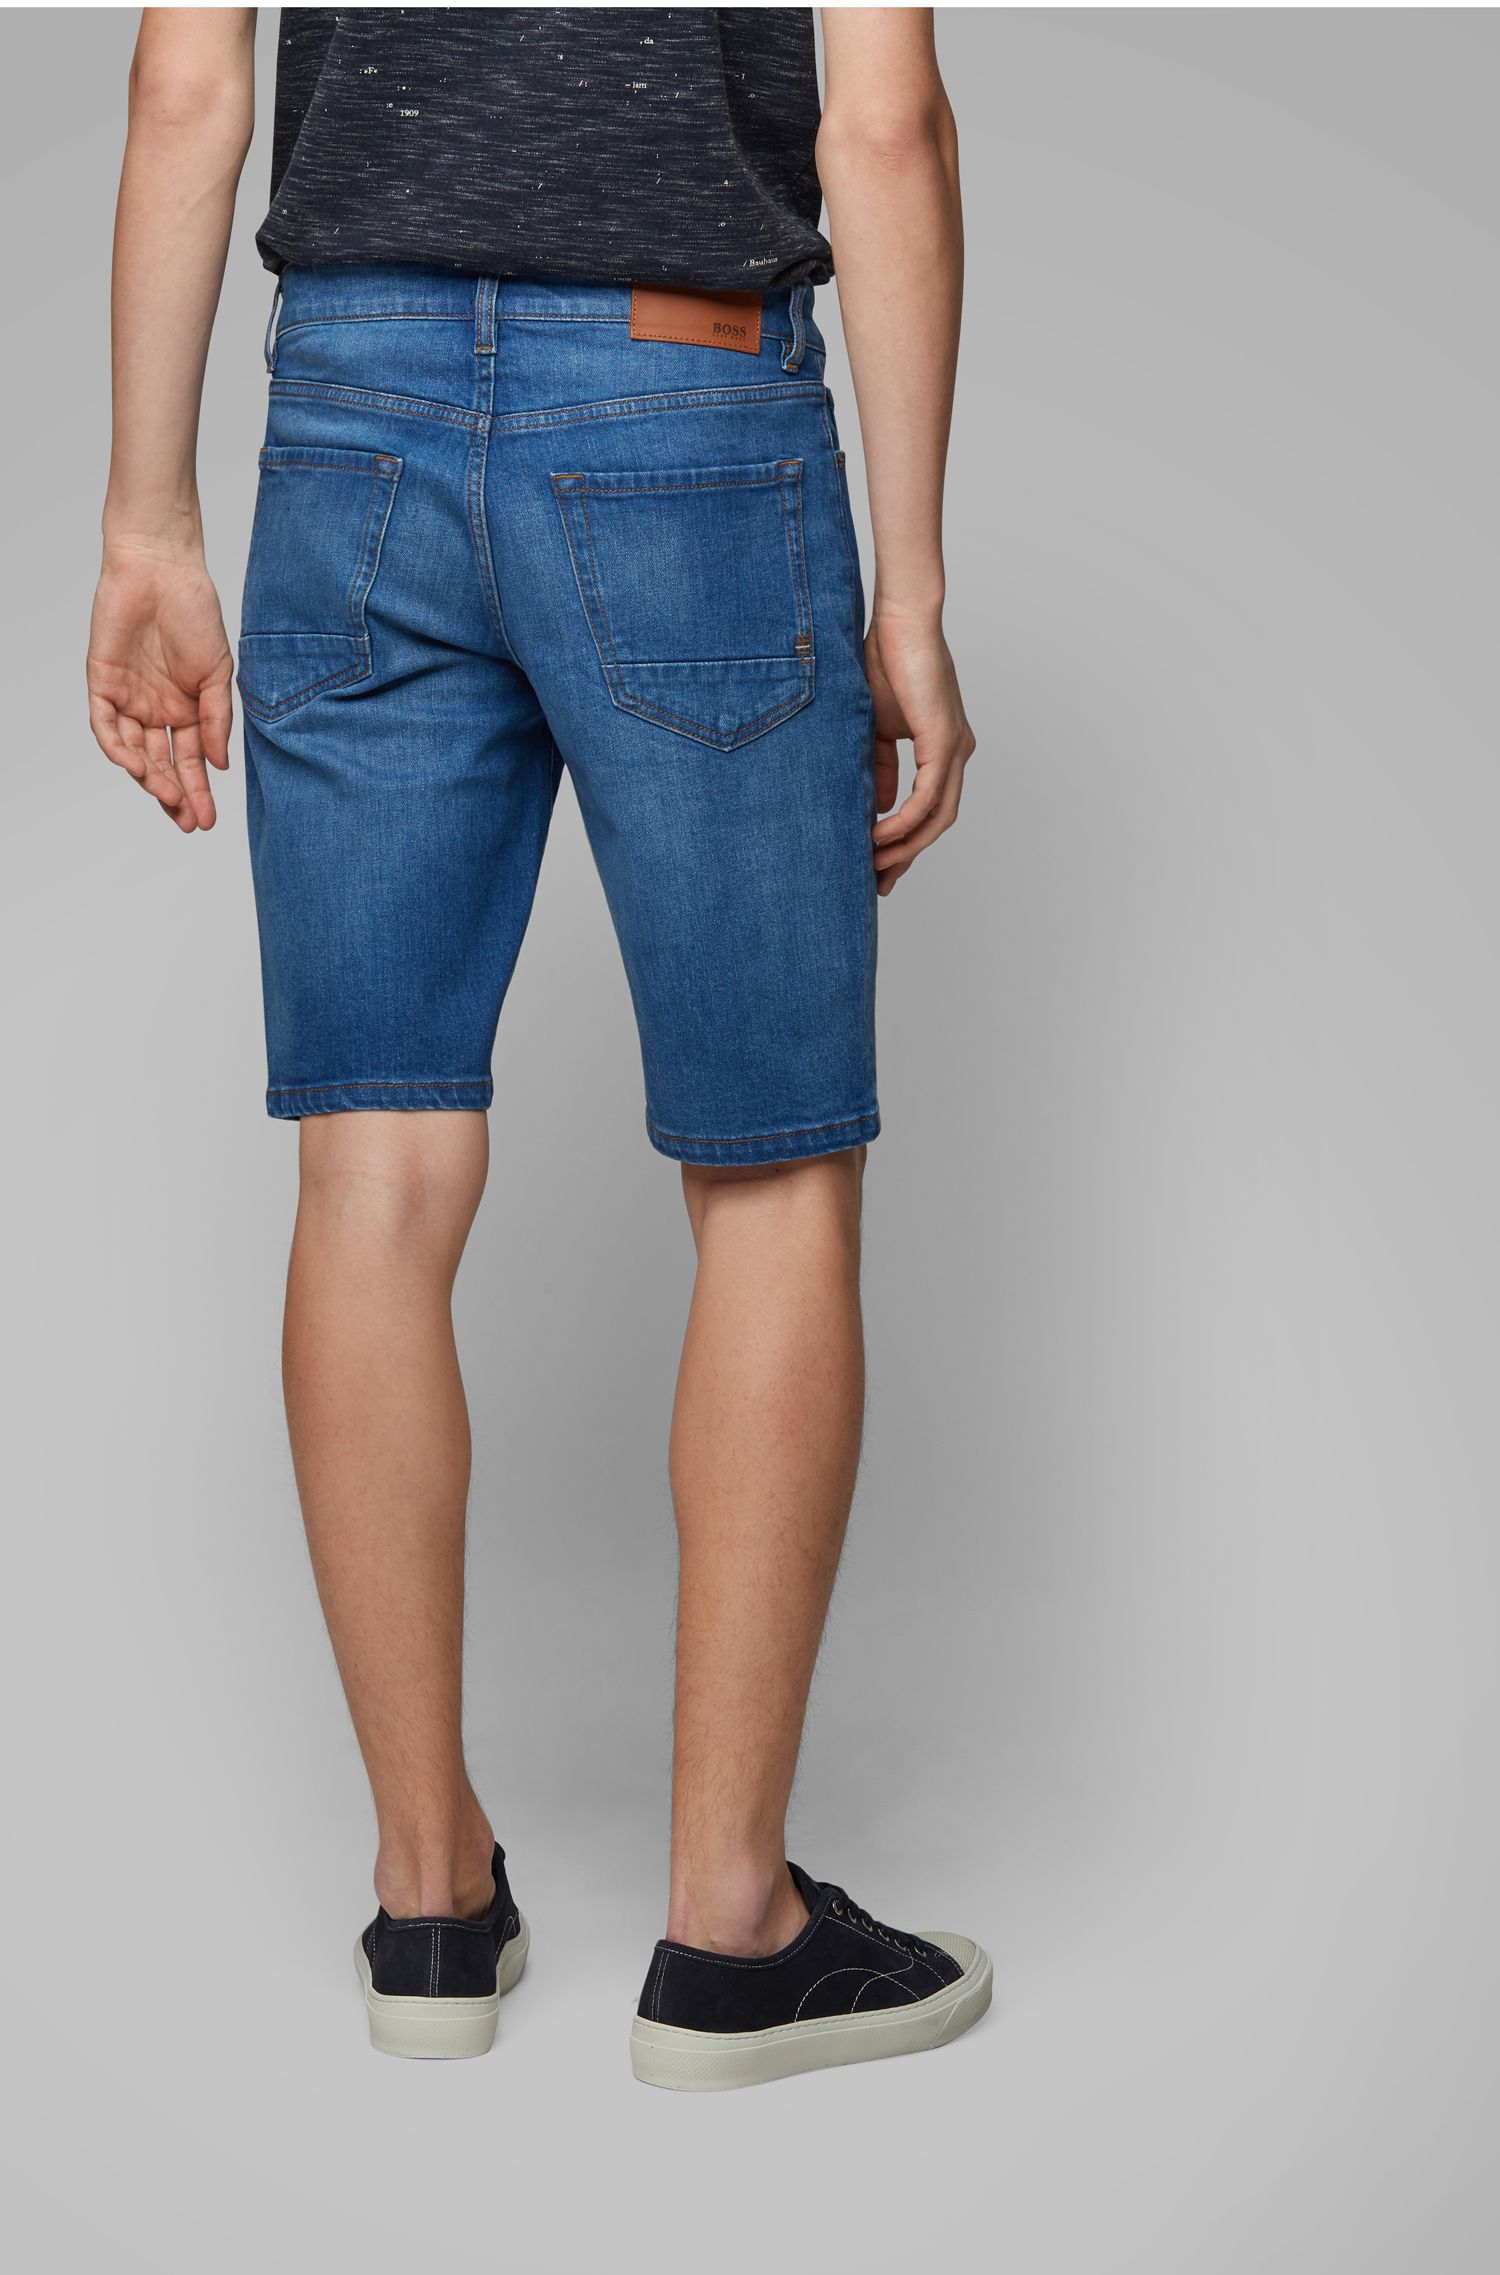 Short Regular Fit en denim stretch confortable bleu océan, Bleu